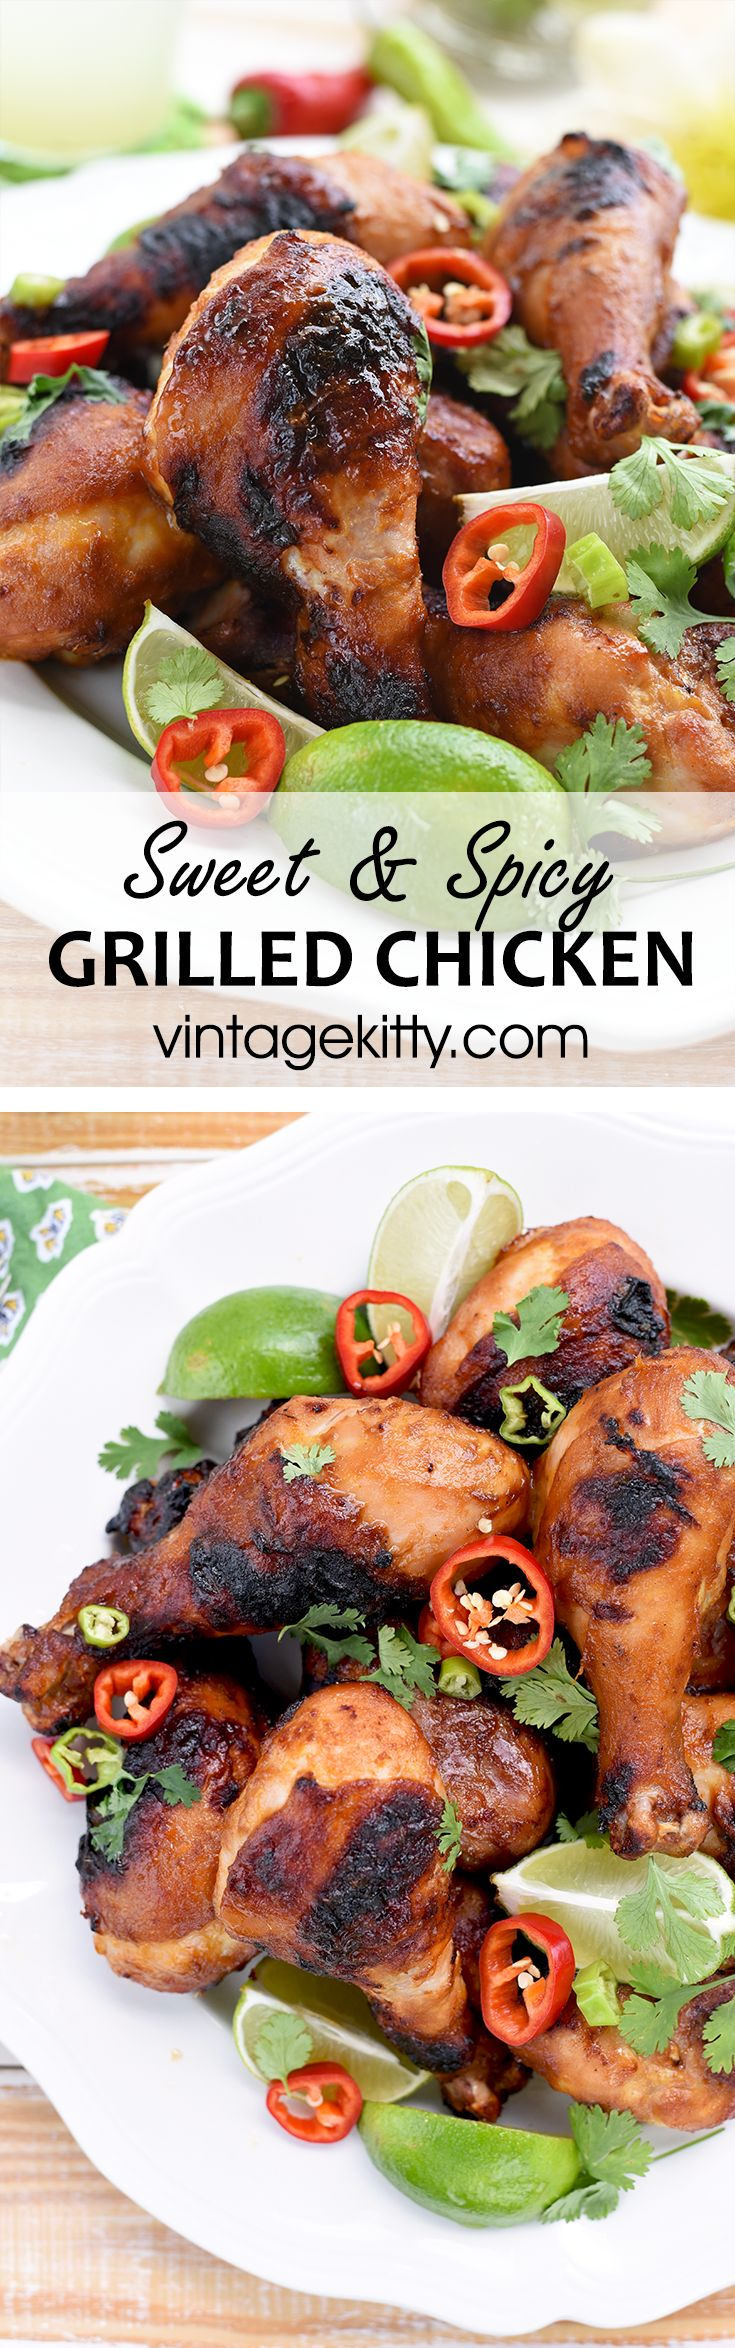 Sweet & Spicy Grilled Chicken Drumsticks #chickenrecipes #grilling #dinnerideas - Vintage Kitty